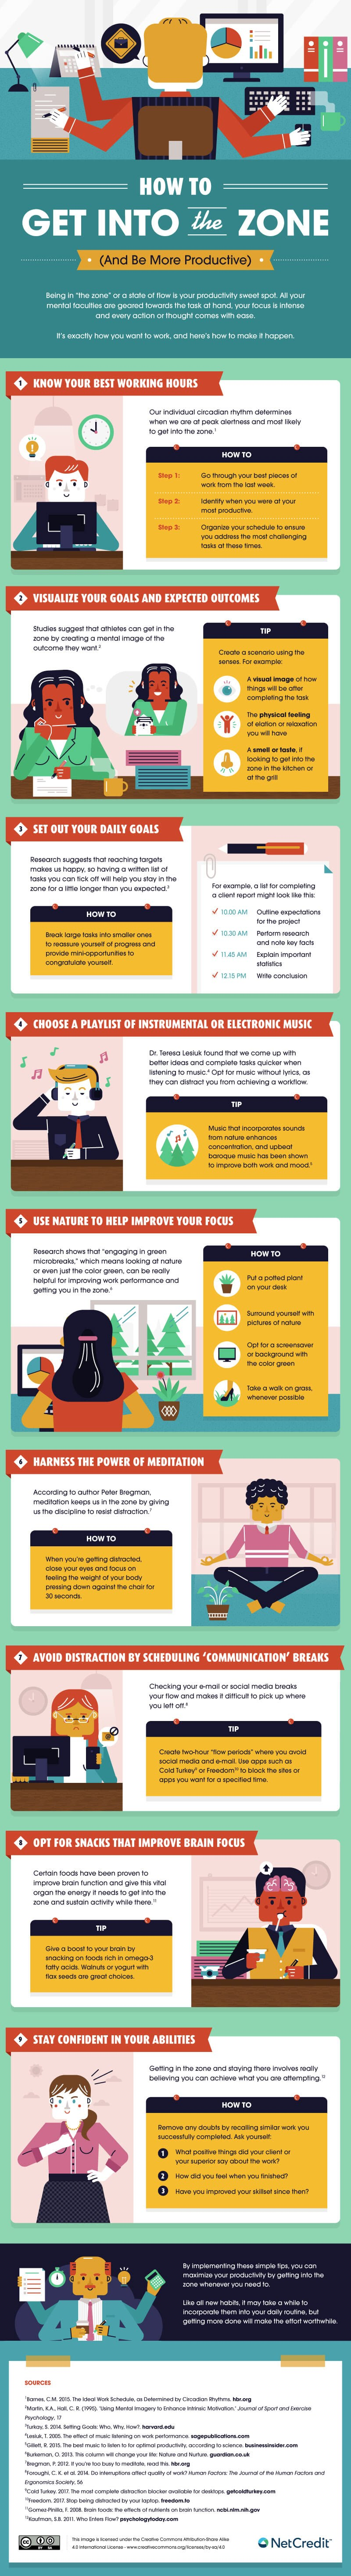 How to Get in the Zone and be More Productive - #Infographic